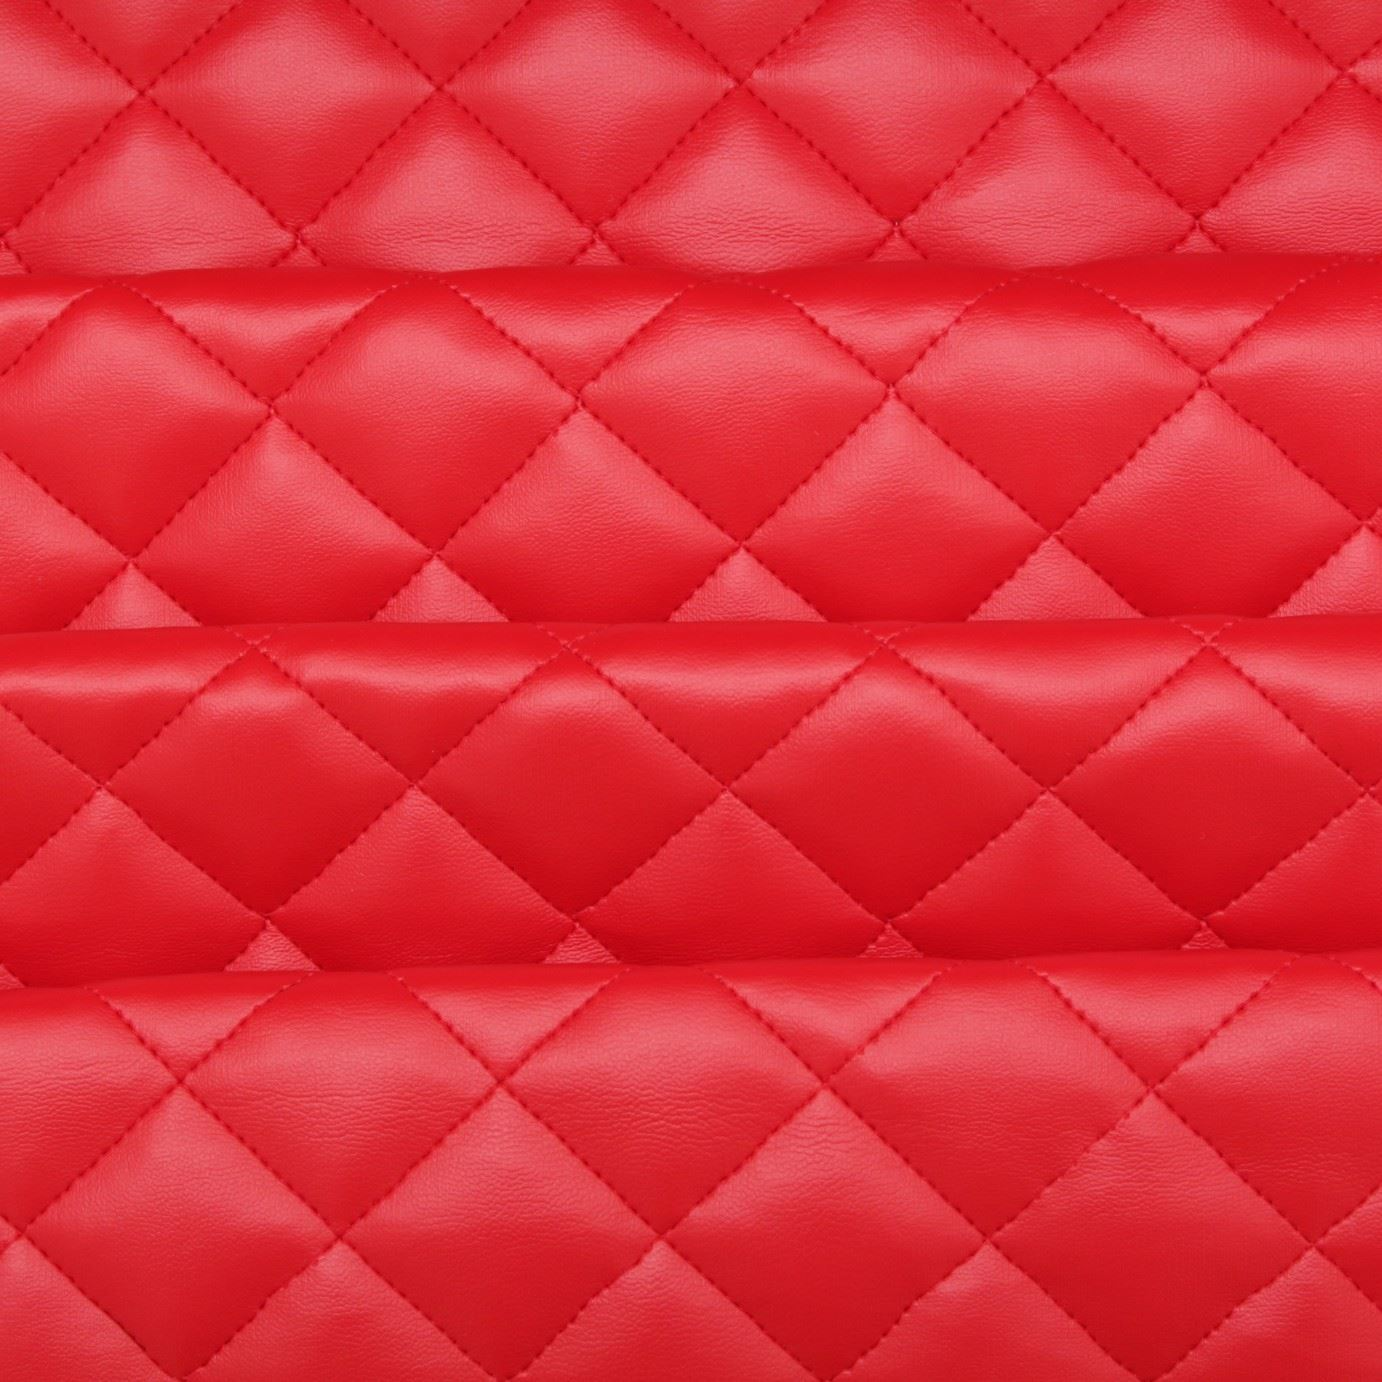 quilted leather diamond padded cushion faux leather interior upholstery fabric ebay. Black Bedroom Furniture Sets. Home Design Ideas